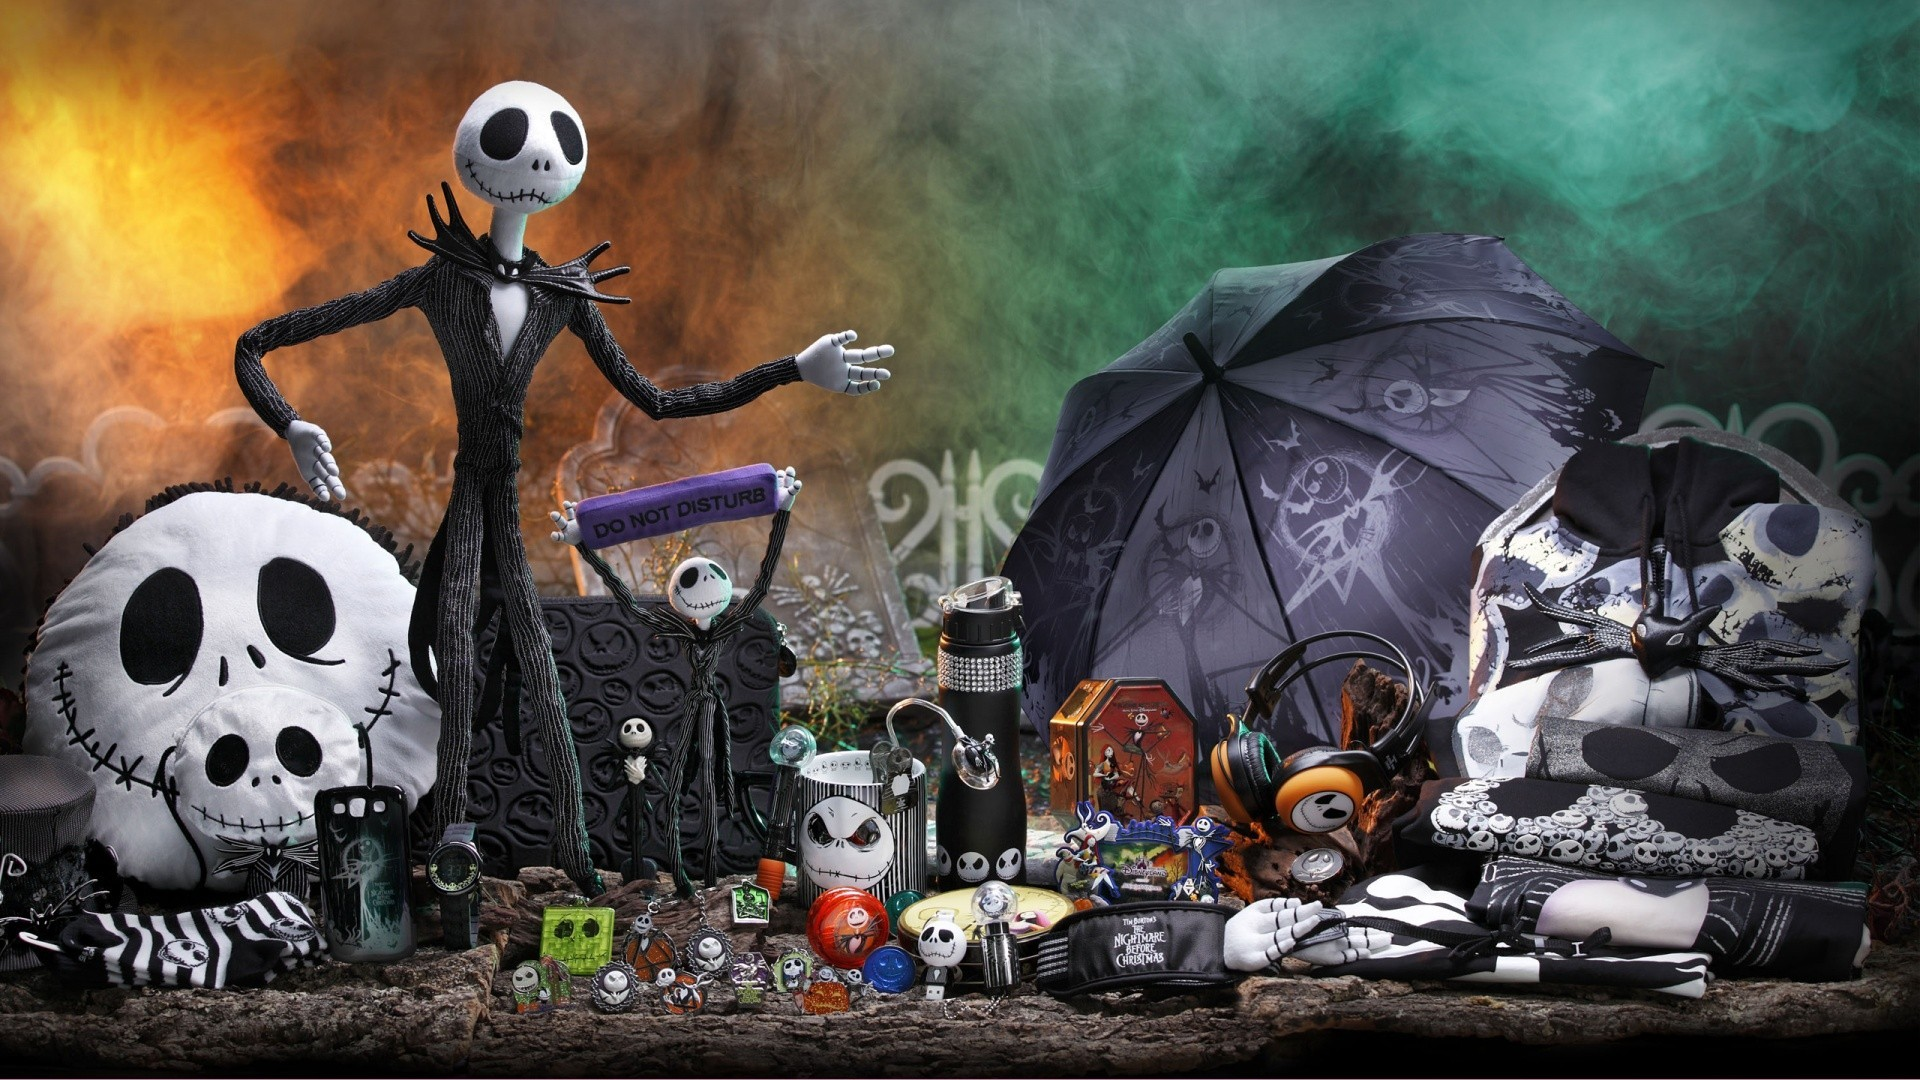 1920x1080 nightmare before christmas wallpaper